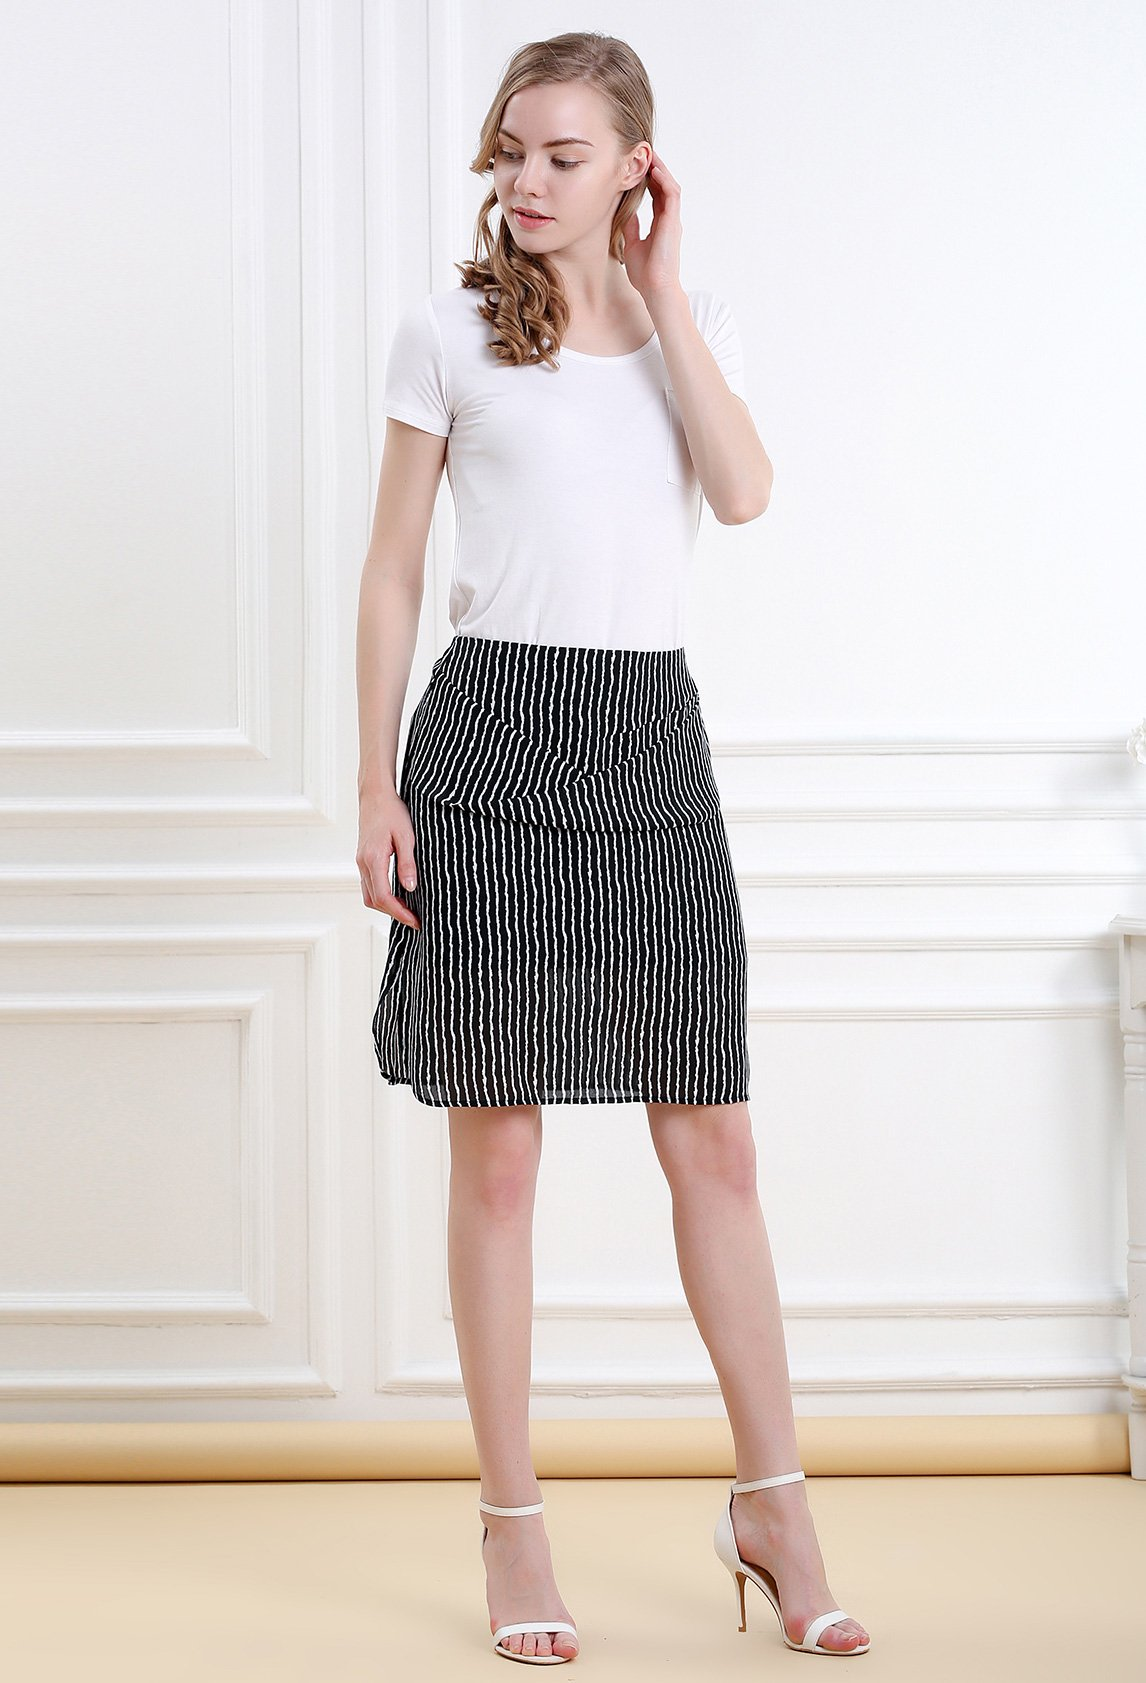 Women Striped Split Mini Skirt Crossed Front Casual A-line Skirt with Zipper XL by Vero Viva (Image #5)